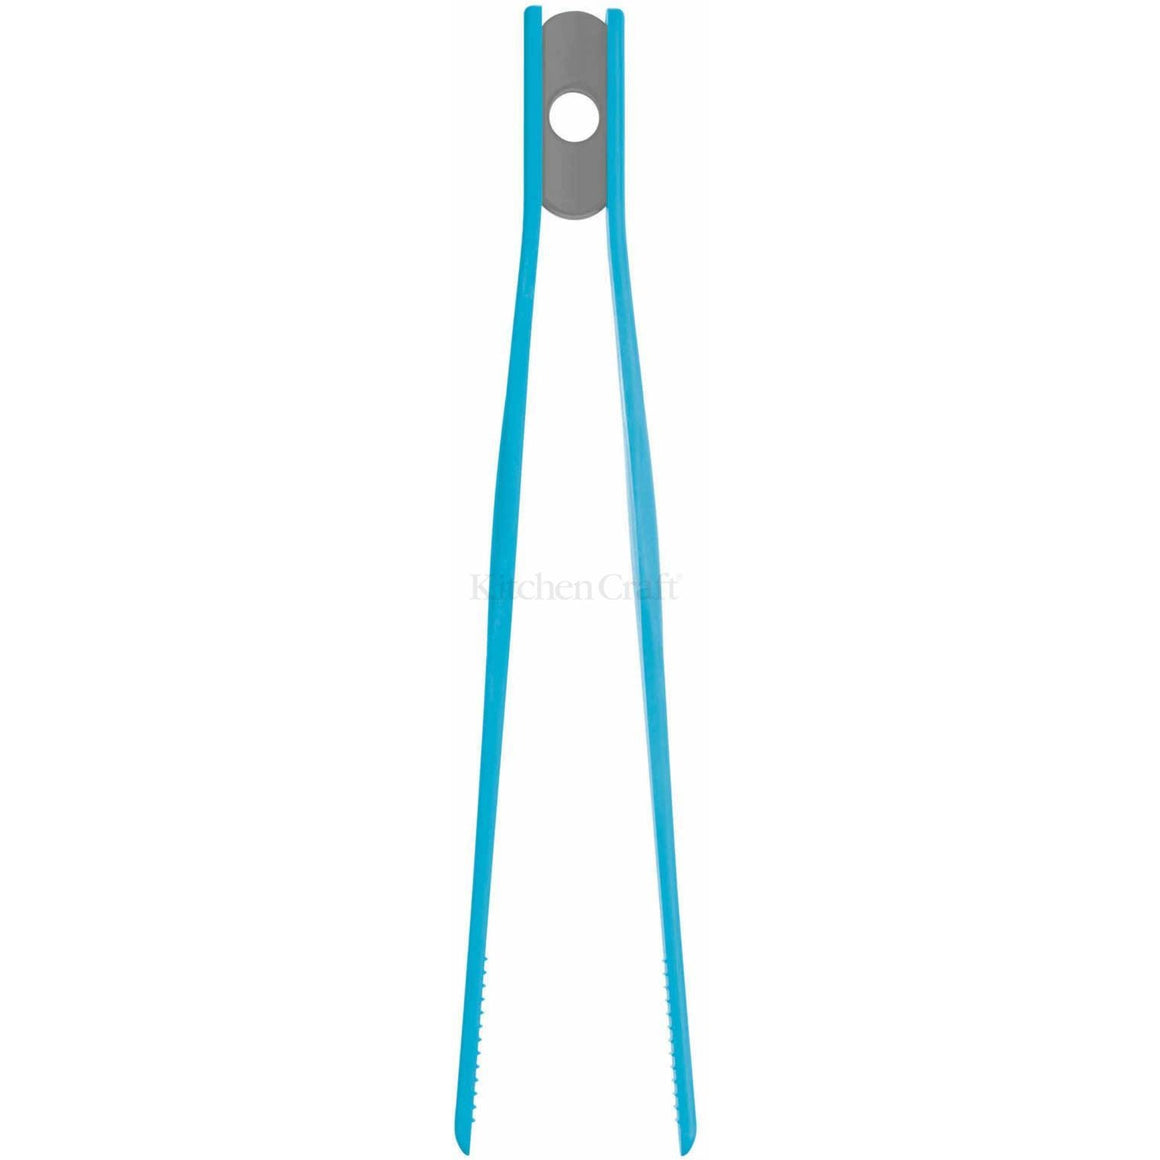 KitchenCraft Blue Tweezer Tong